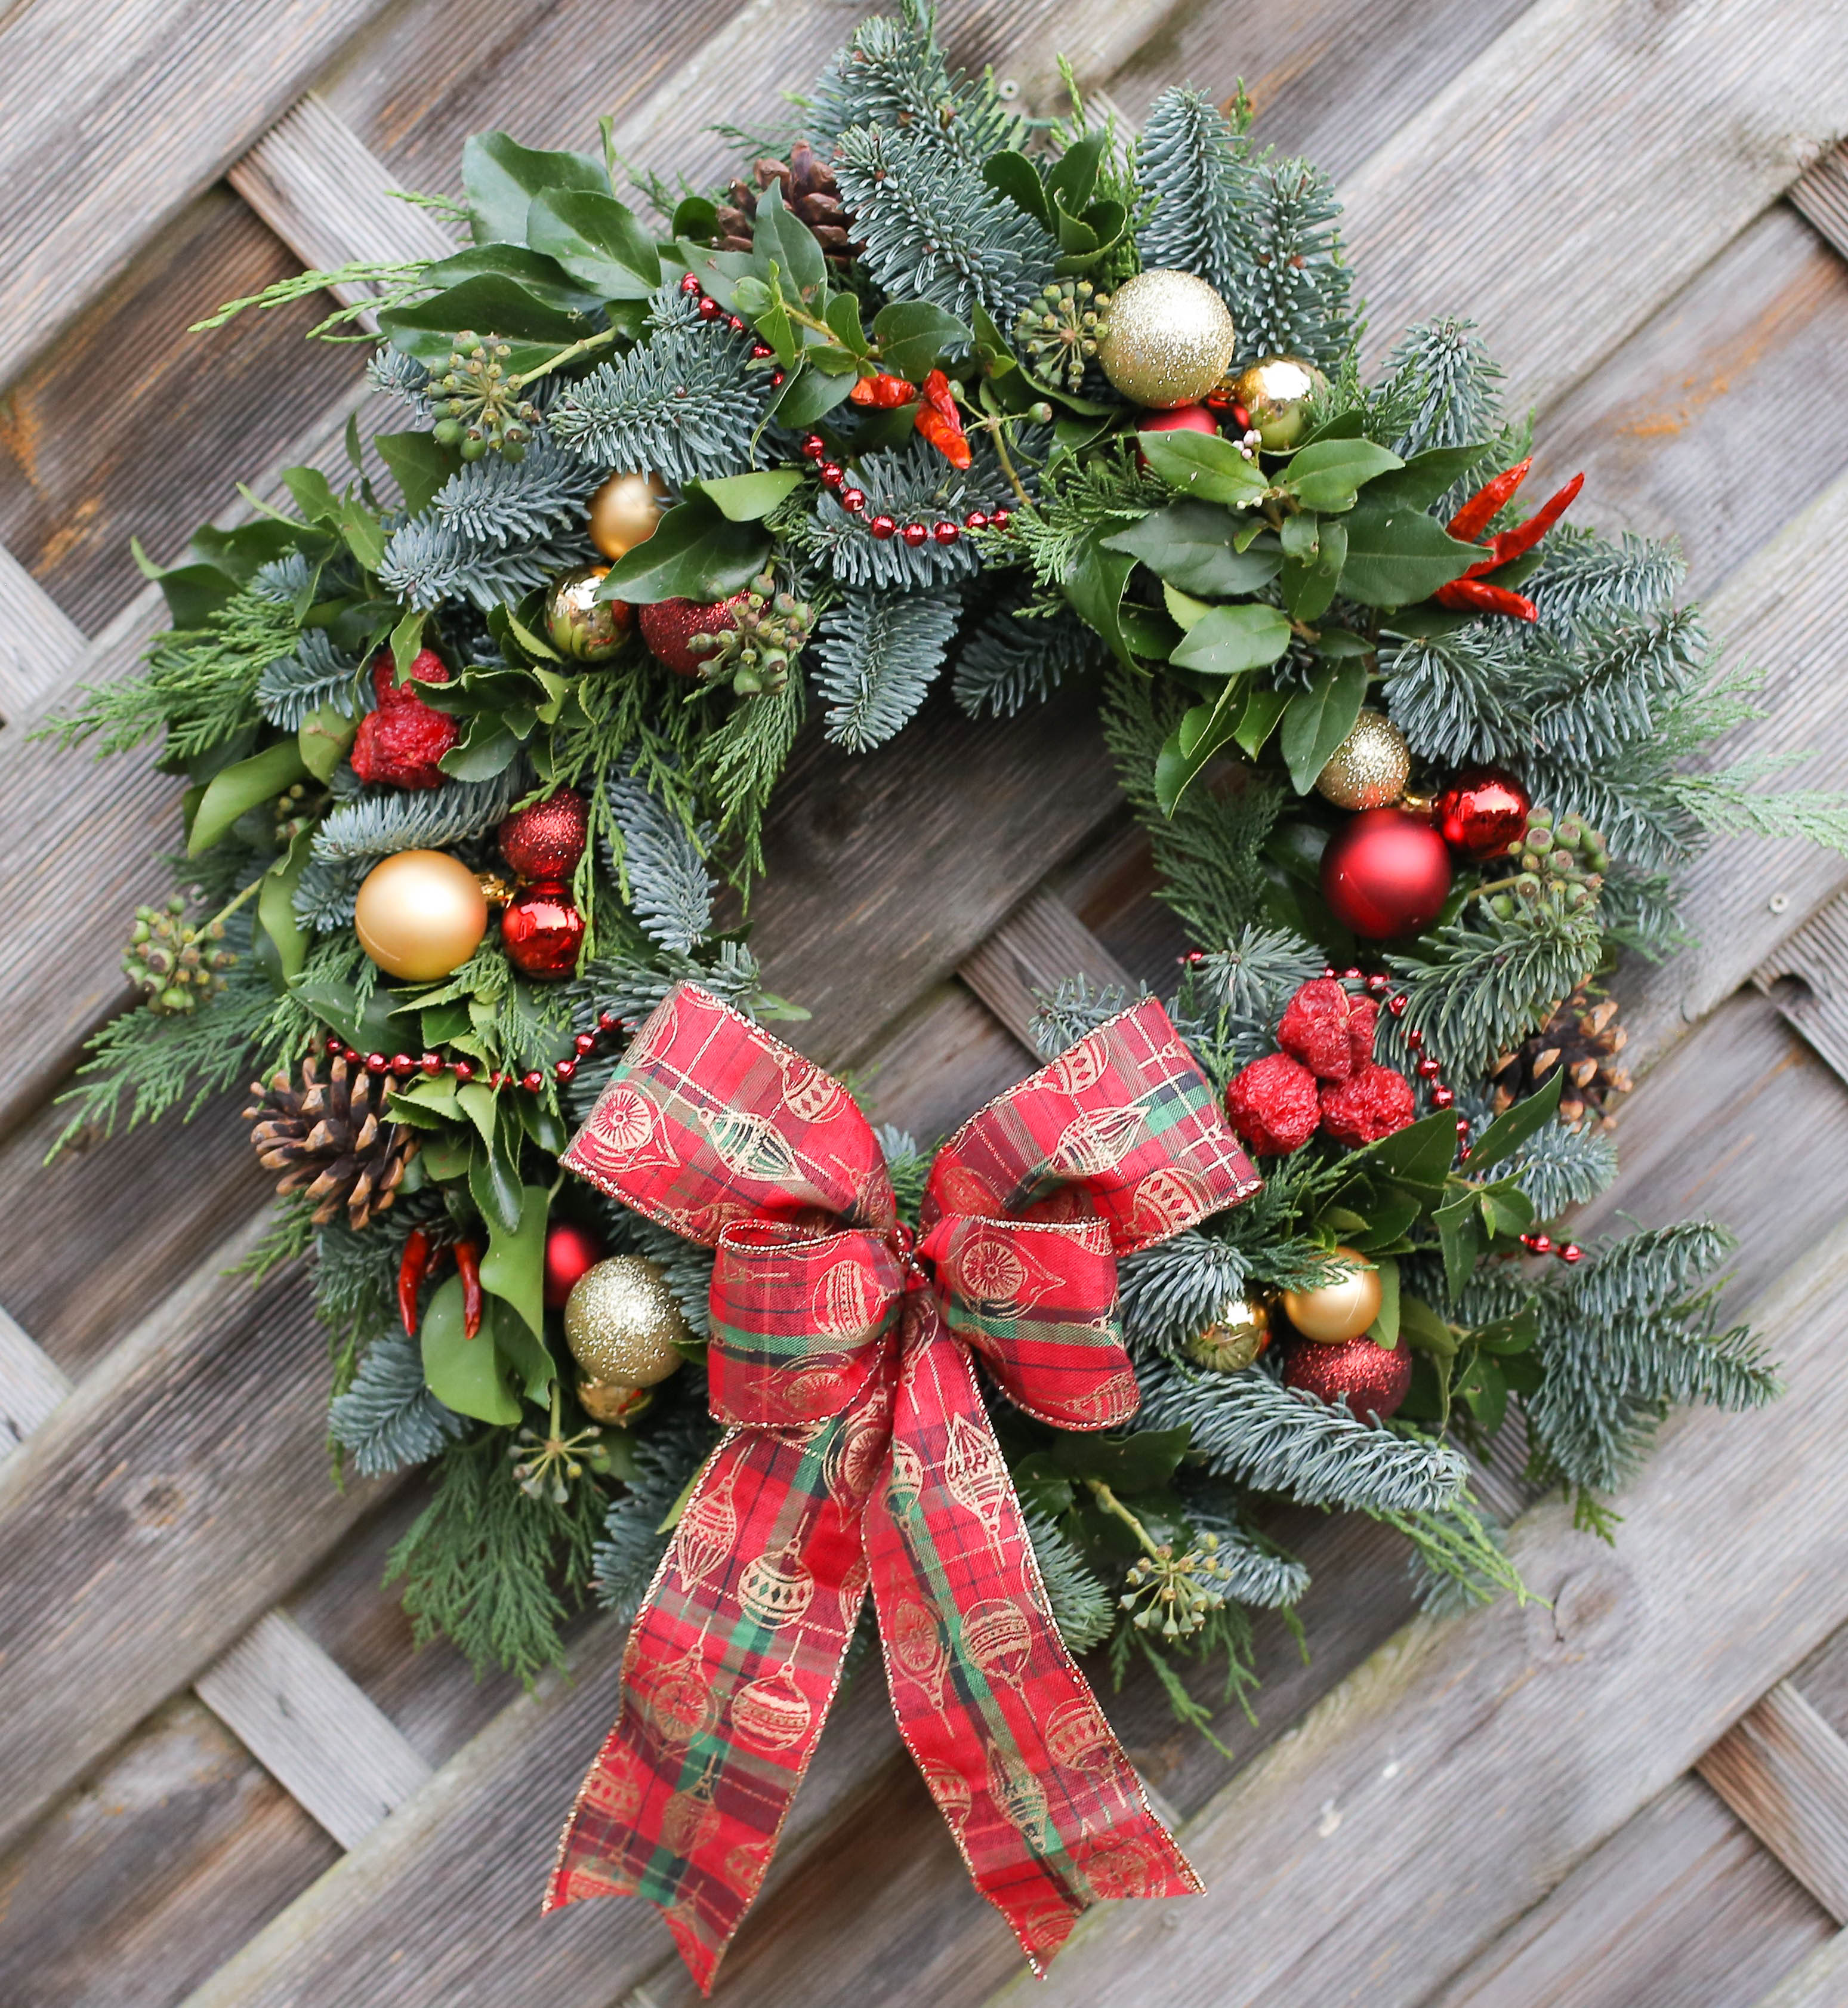 Christmas Wreath And Garland Making Workshops